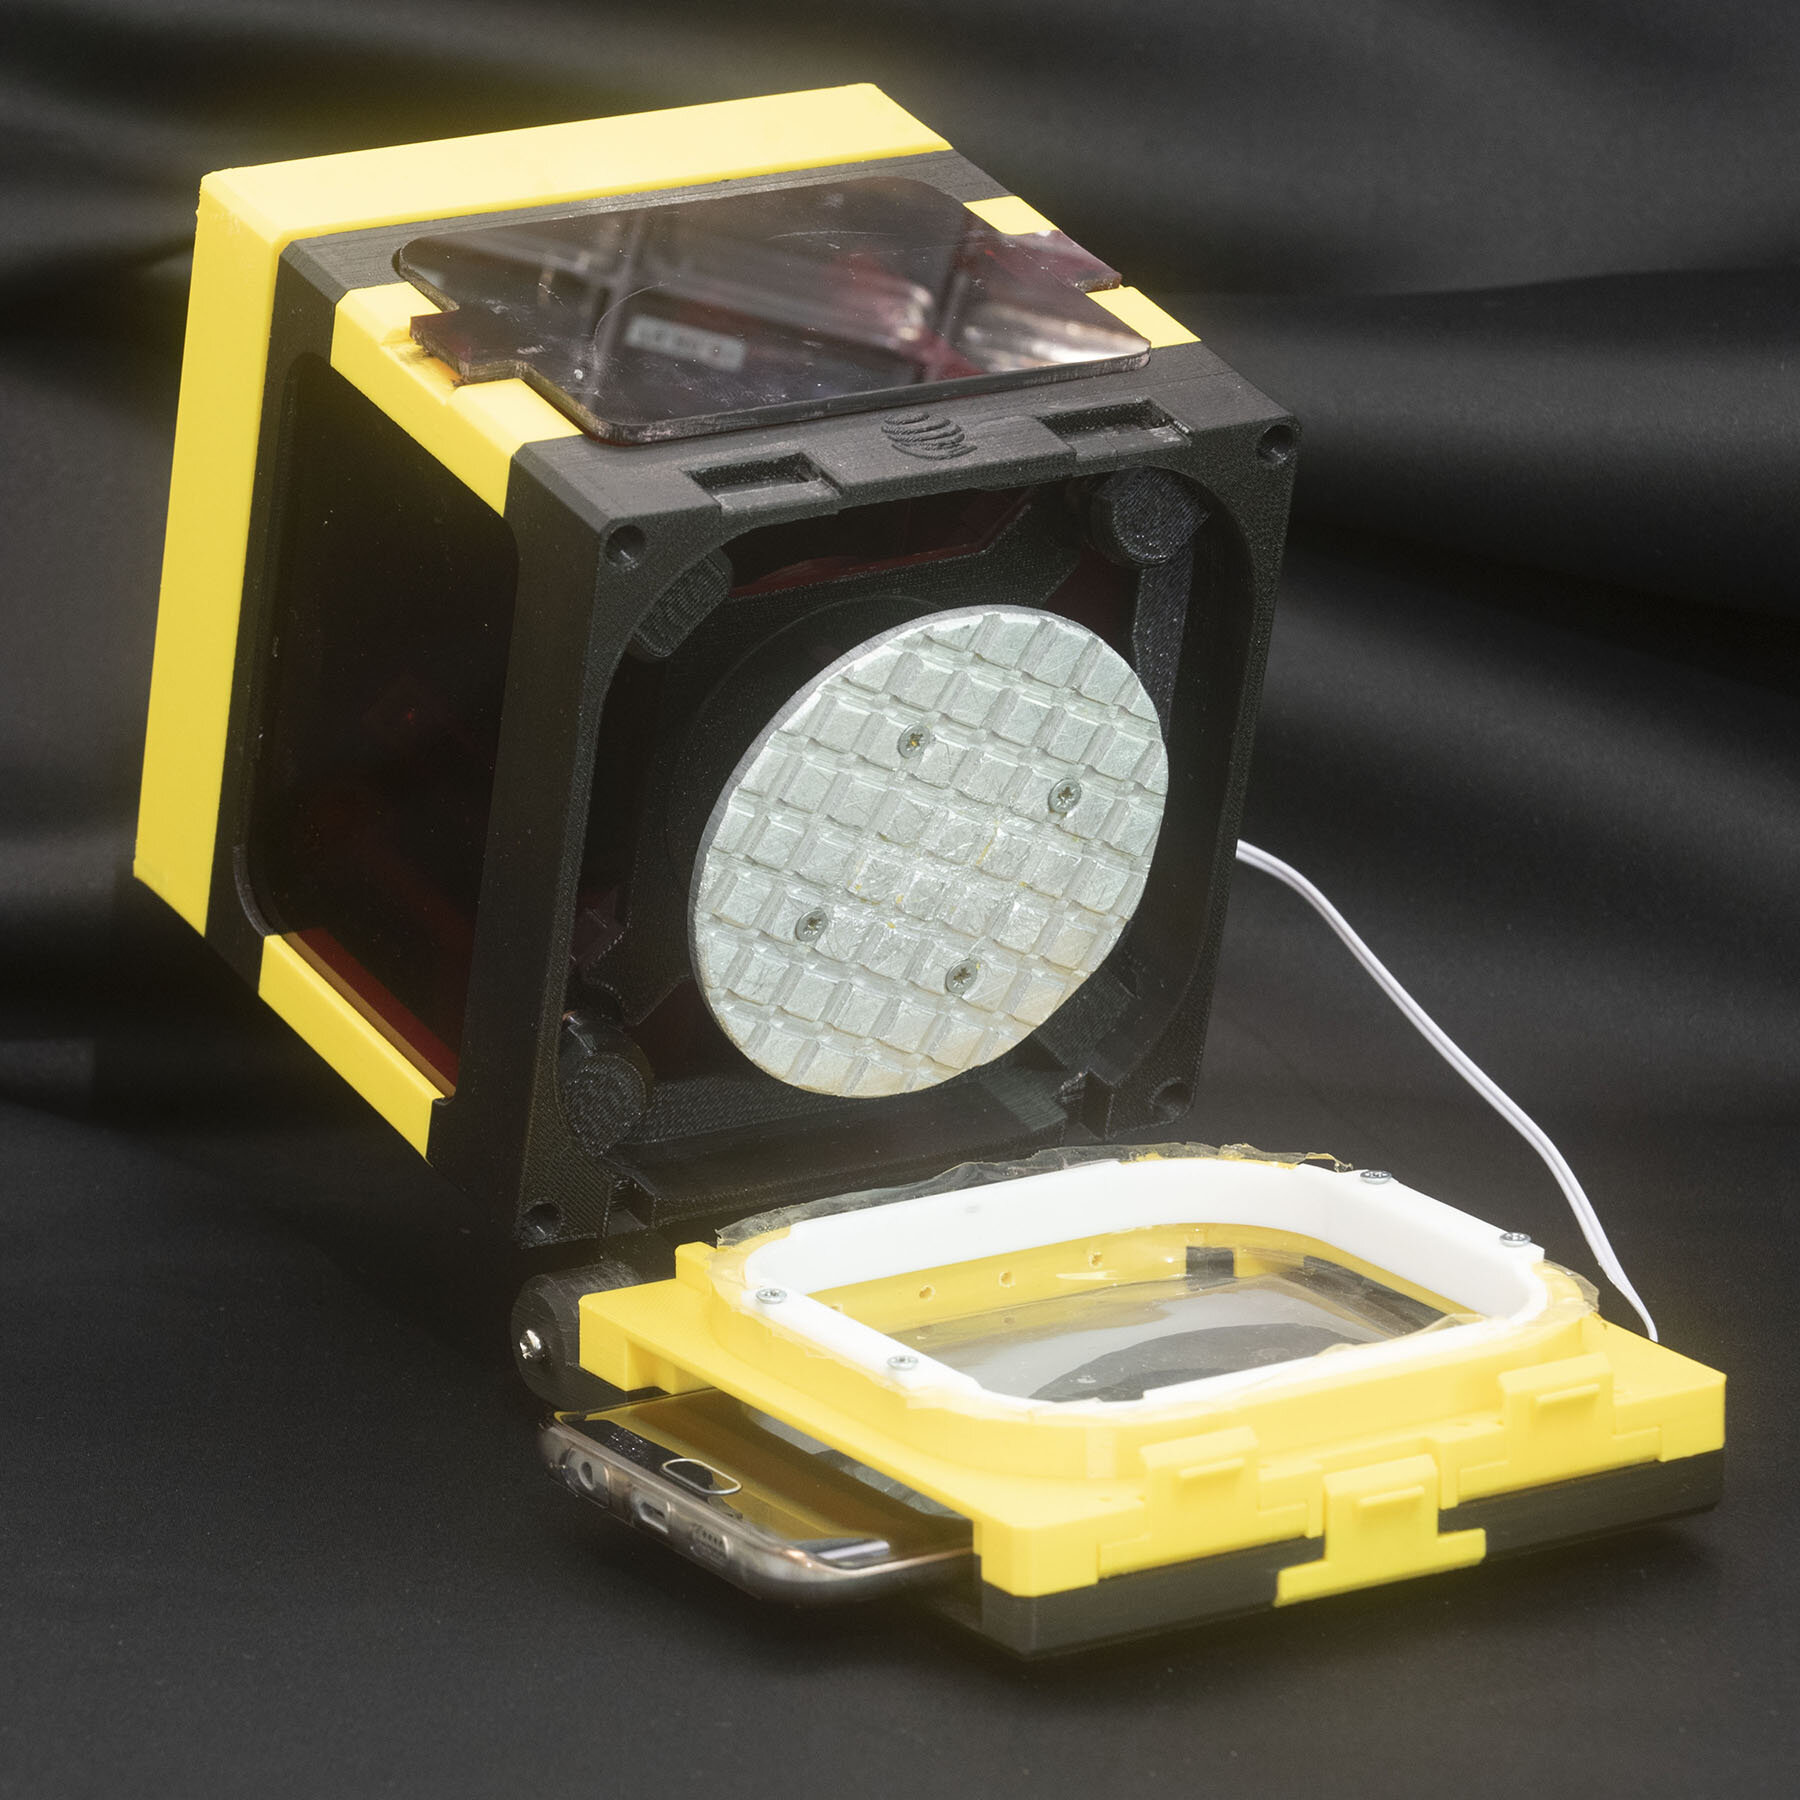 LumiBee stampante 3D low cost